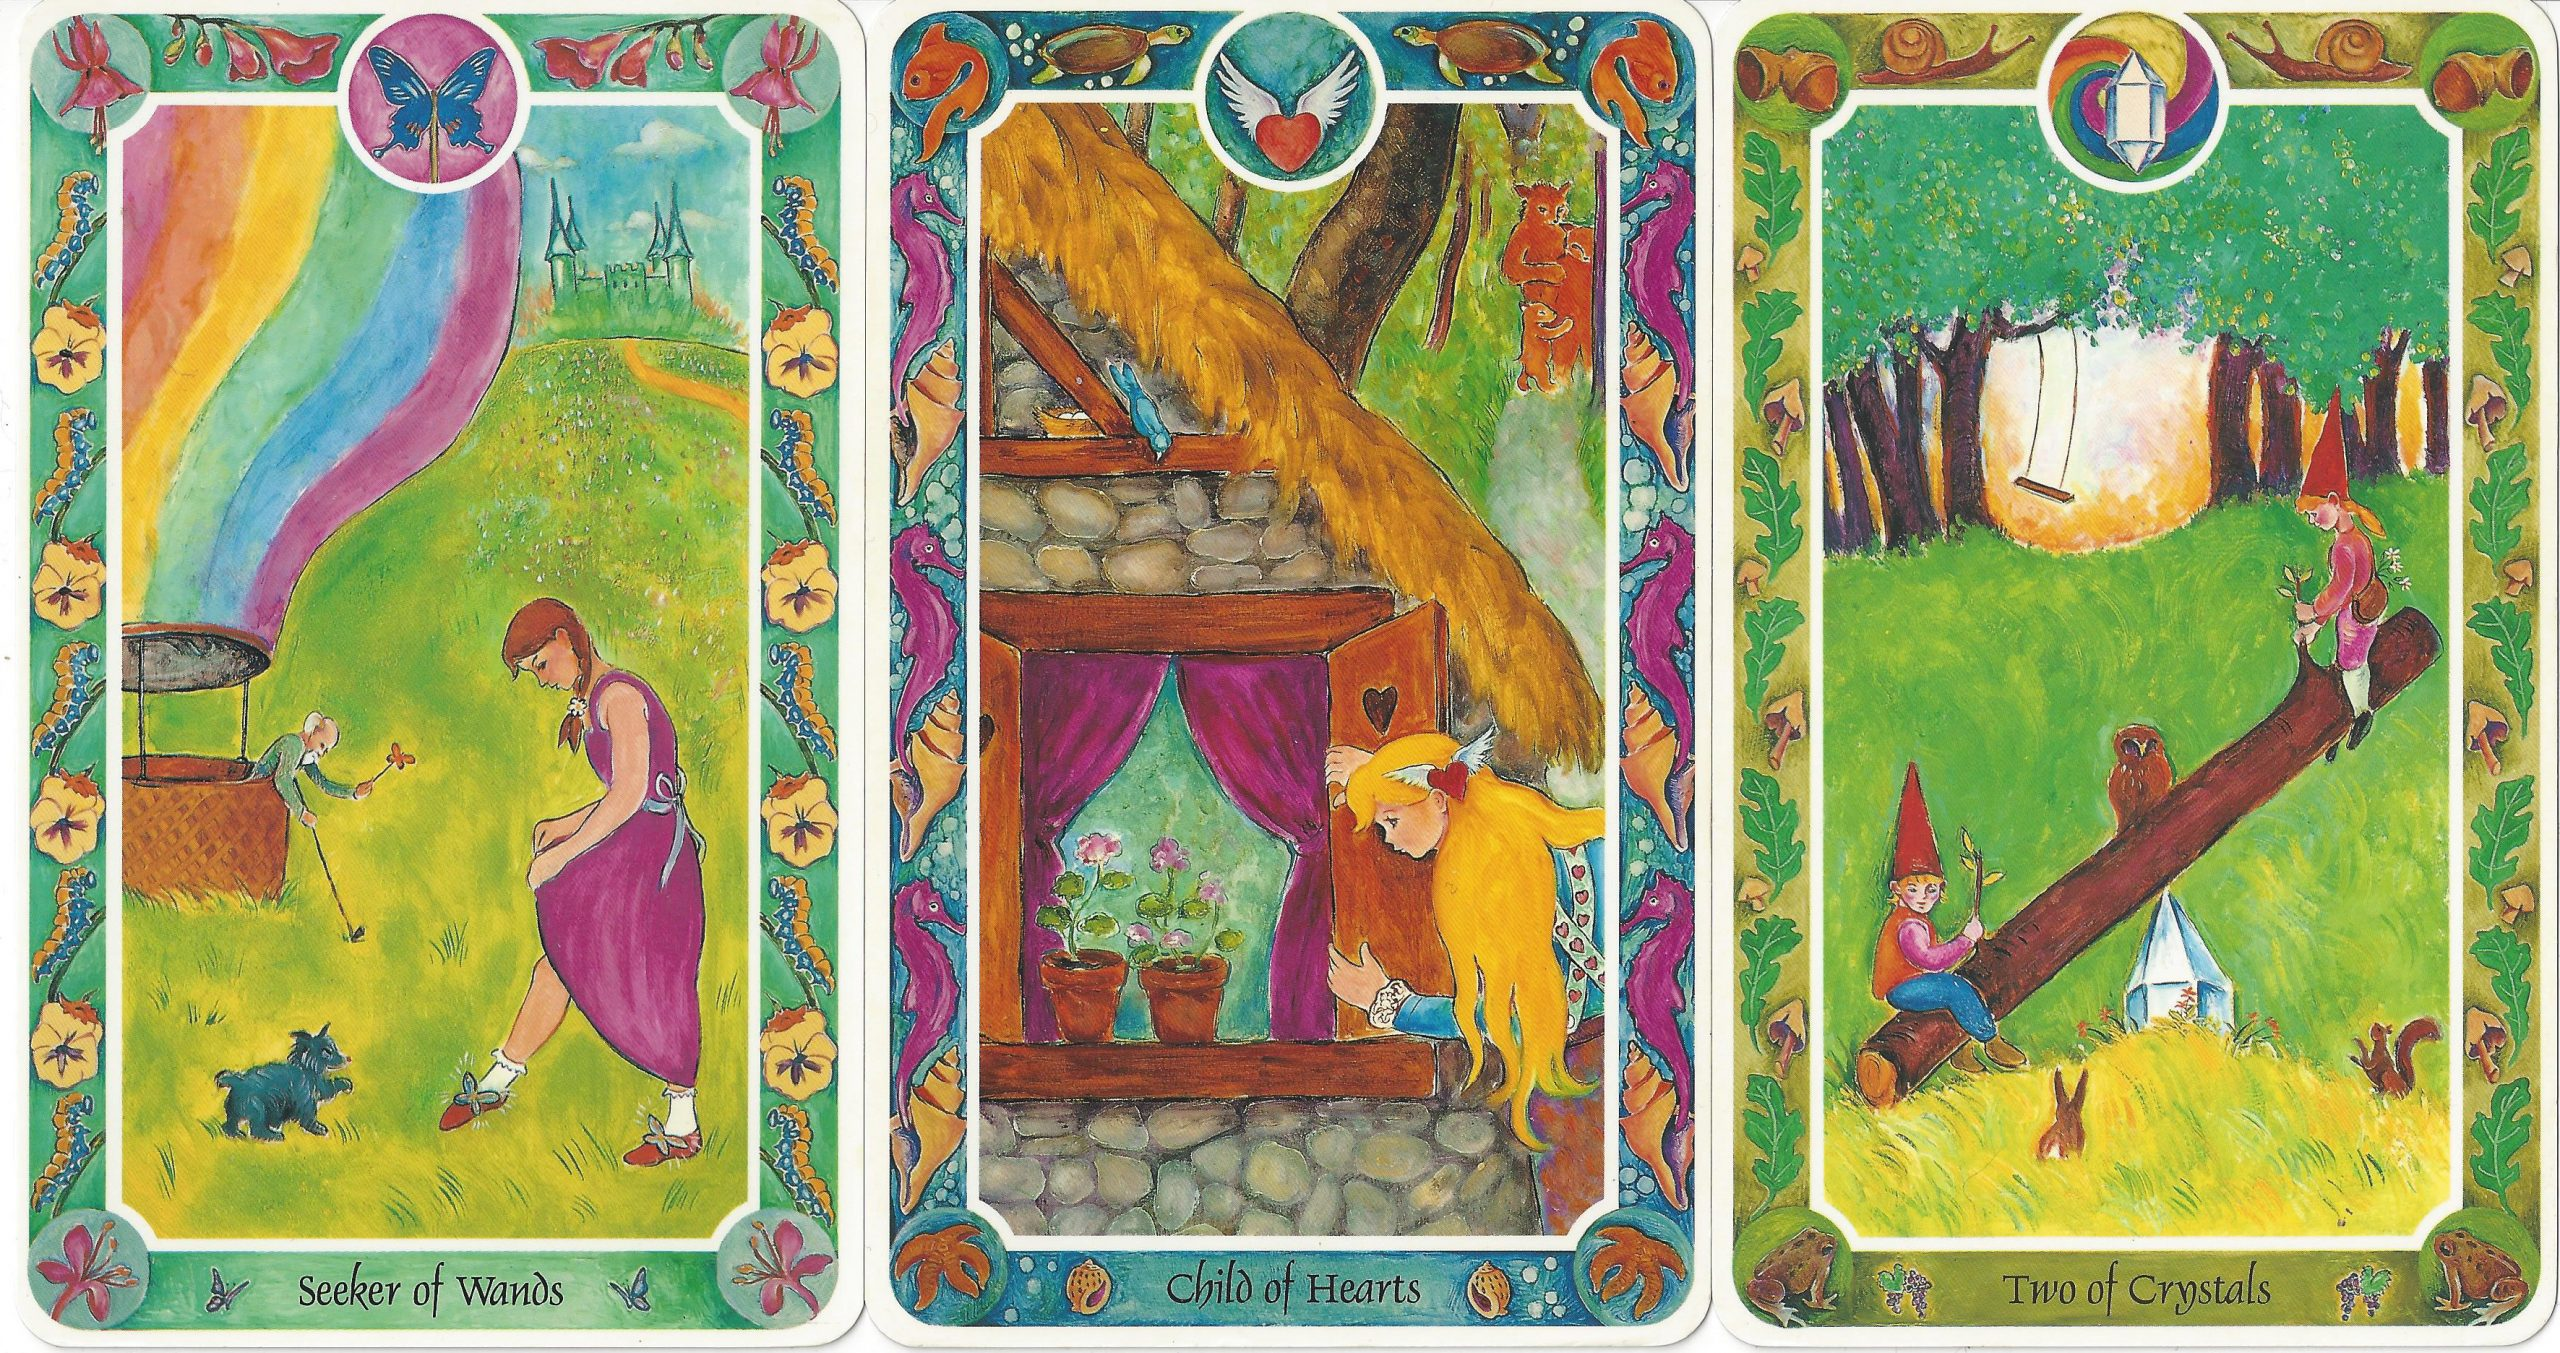 """""""Seeker of Wands,"""" """"Child of Hearts,"""" and """"Two of Crystals"""" from Inner Child Cards by Isha Lerner, Mark Lerner, Christopher Guilfoil, Bear & Company, 1992."""